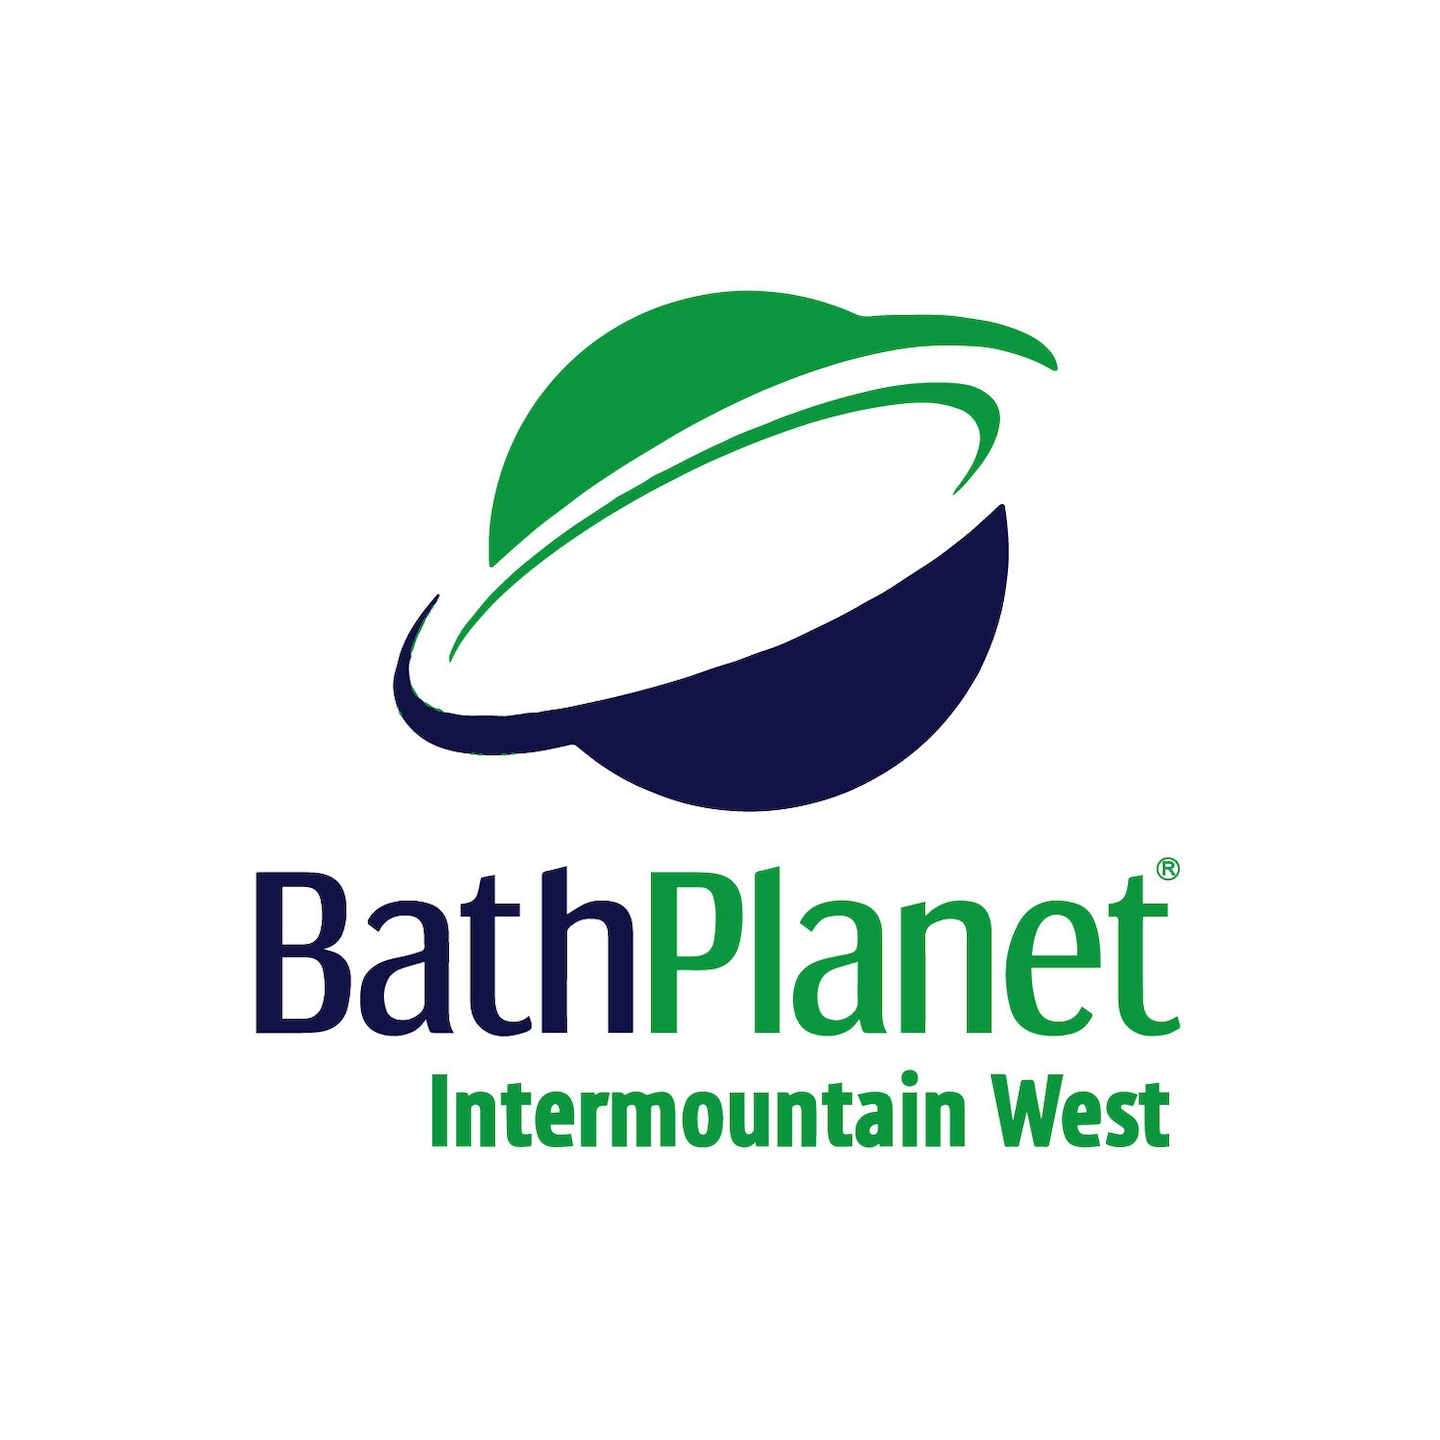 Bath Planet Intermountain West